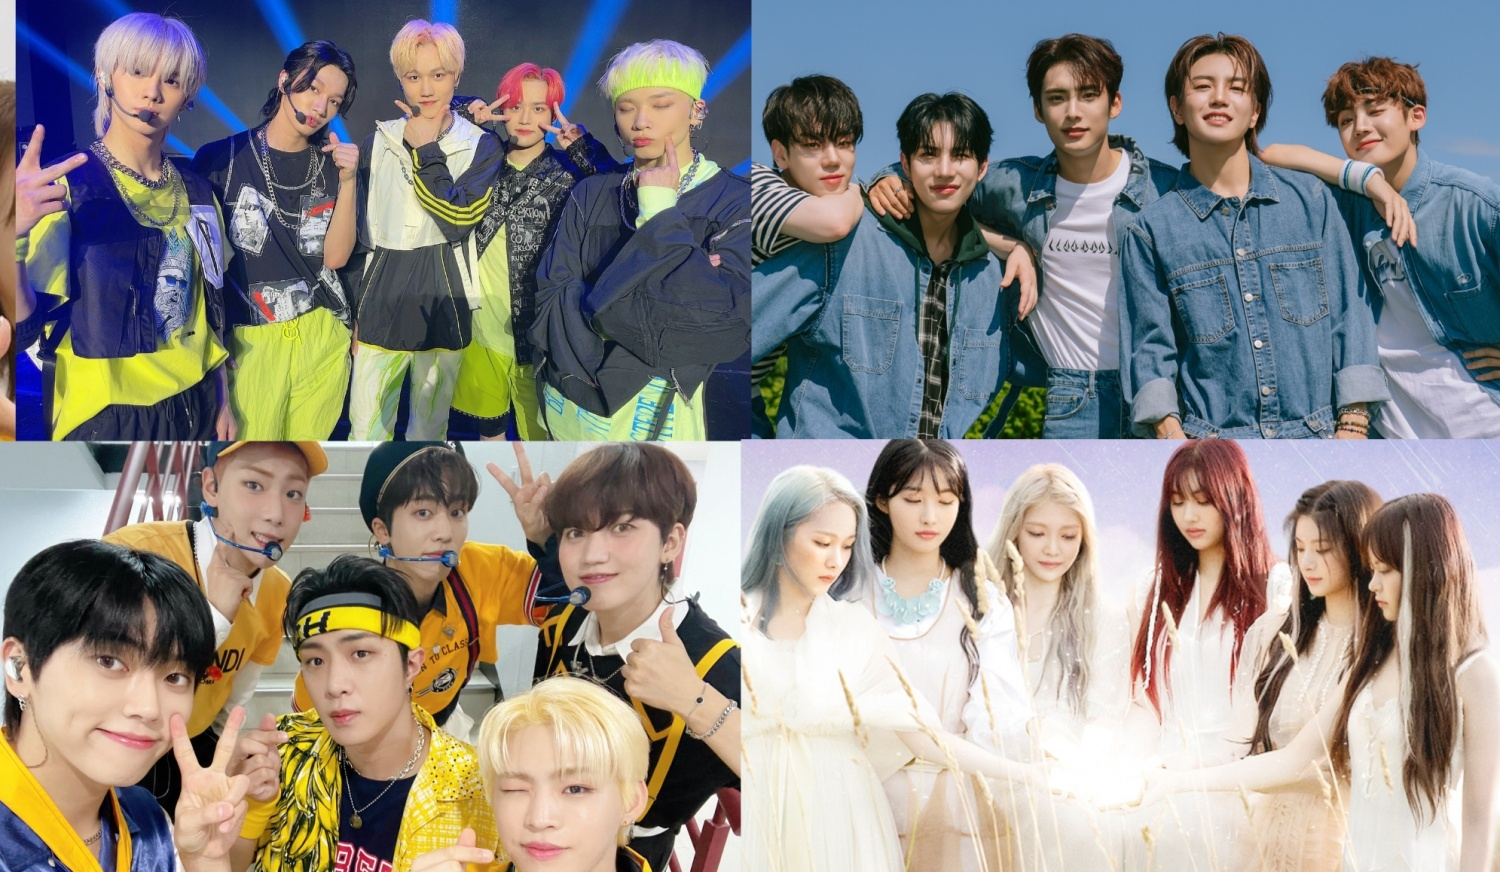 EVERGLOW, ONF, A.C.E. & More: Joy Ruckus Club Celebrates 'New Beginnings' with K-pop SuperFest – See Day 2 Highlights